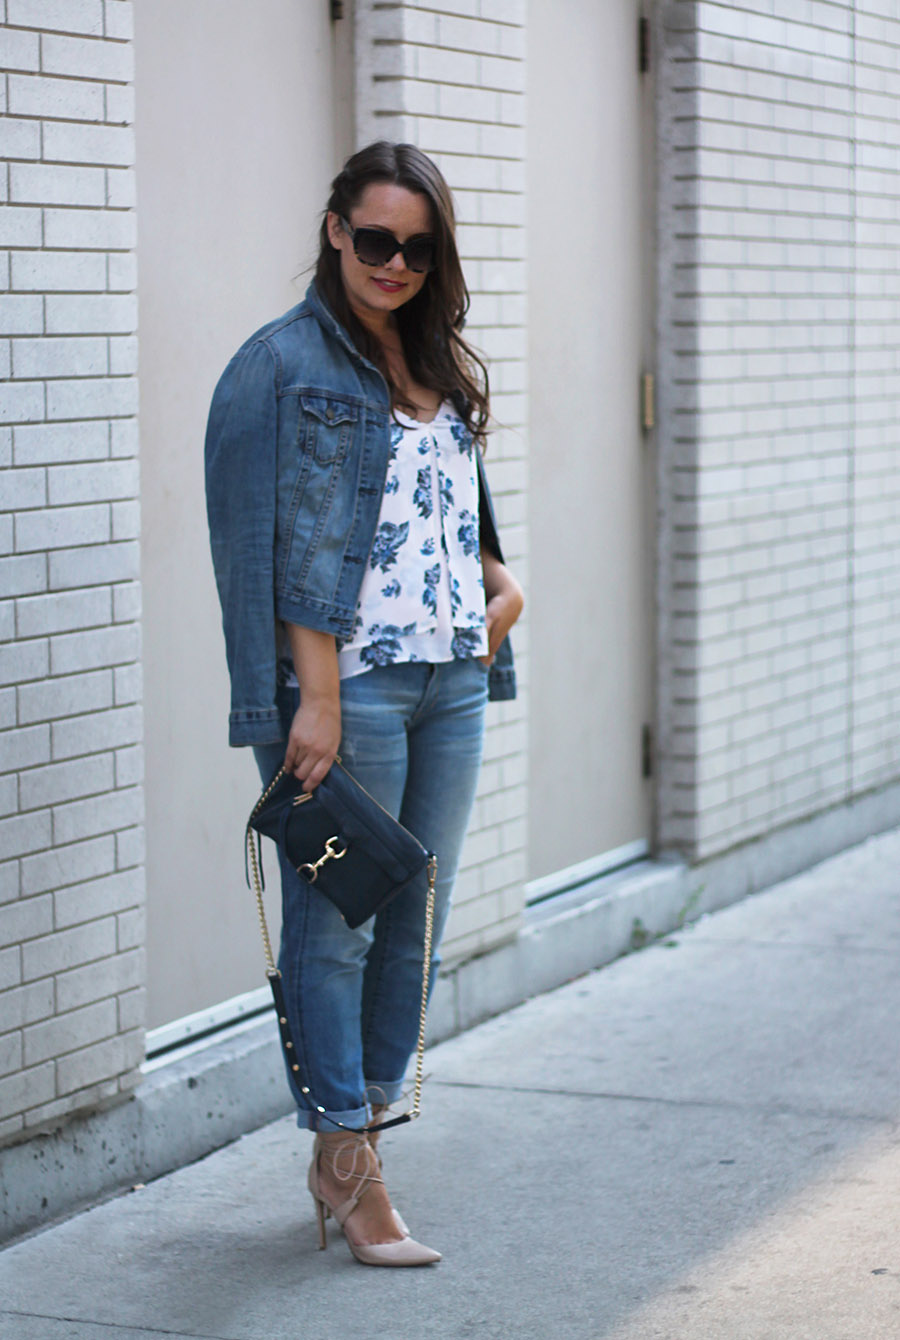 fashion-style-blogger-toronto-canada-outfit-ideas